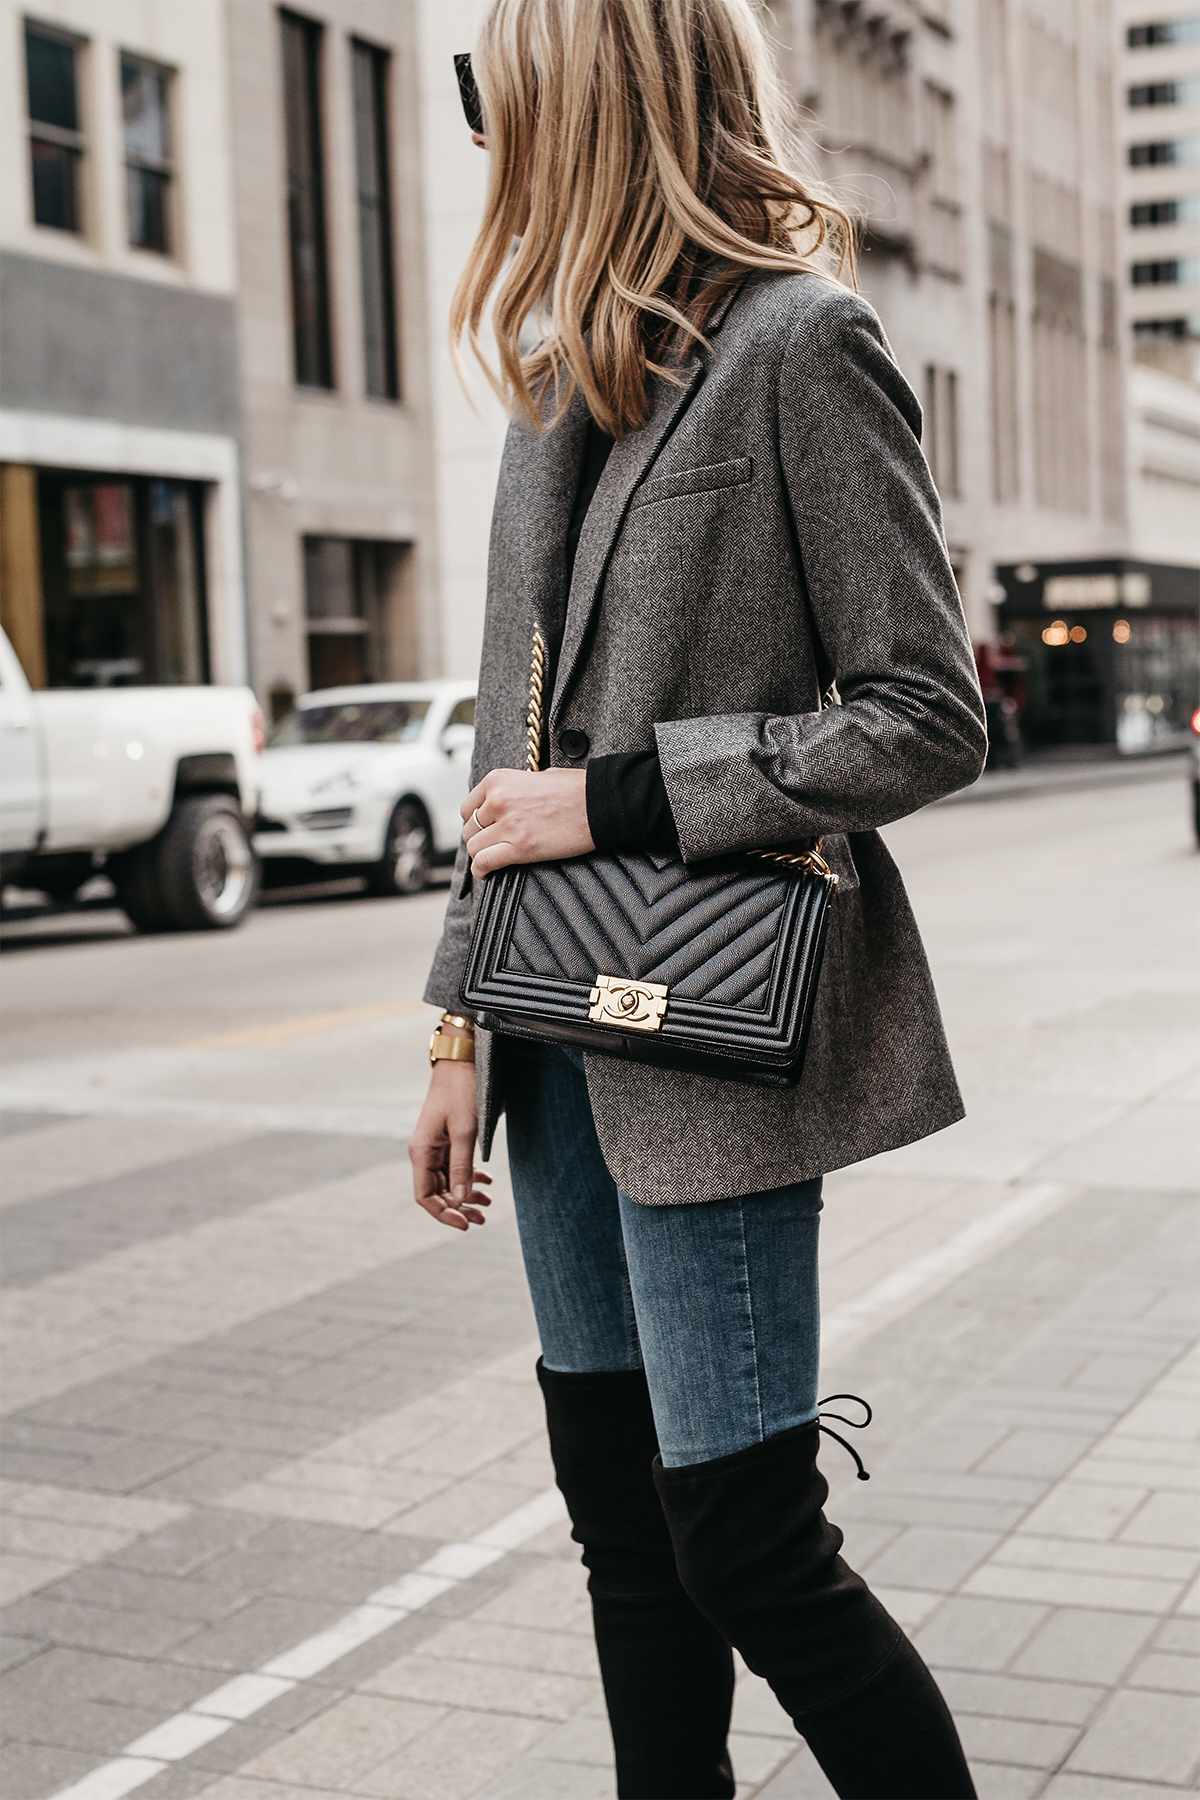 Blonde Woman Wearing Everlane Oversized Grey Blazer Chanel Black Boy Bag Denim Jeans Over the Knee Boots Fashion Jackson Dallas Blogger Fashion Blogger Street Style